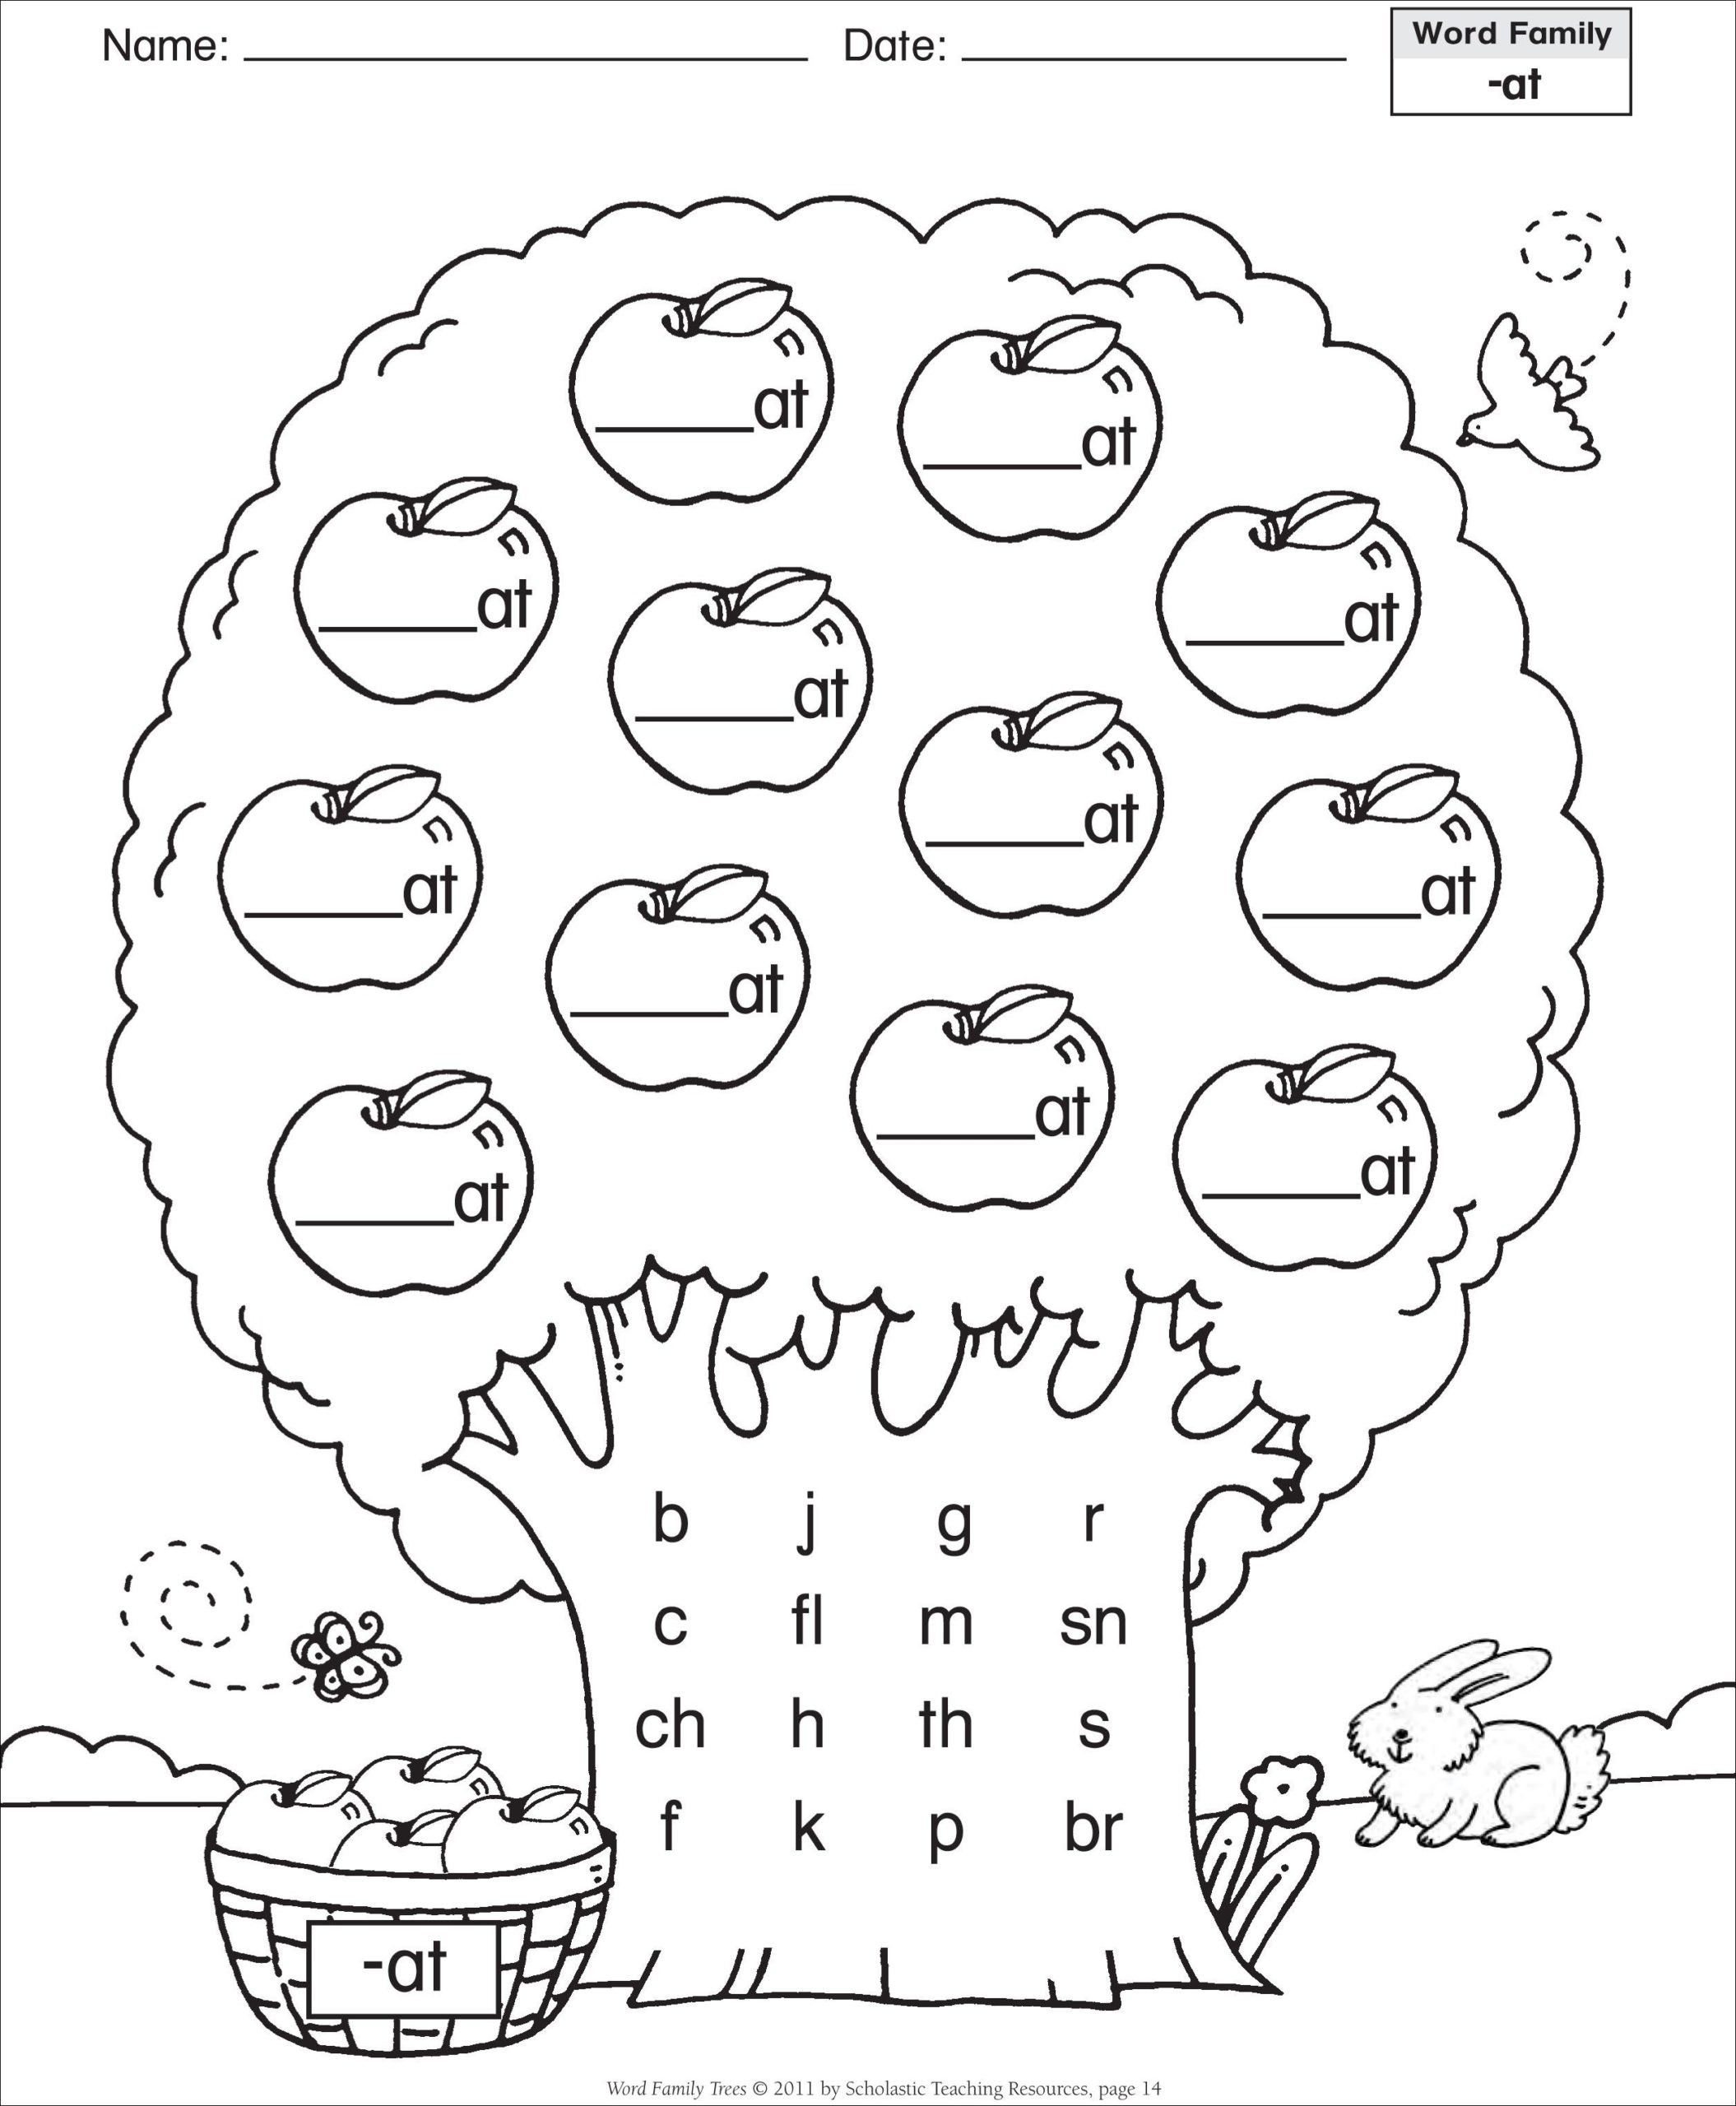 6th Grade Art Worksheets Word Family Template Short Vowel at Tree Grade English